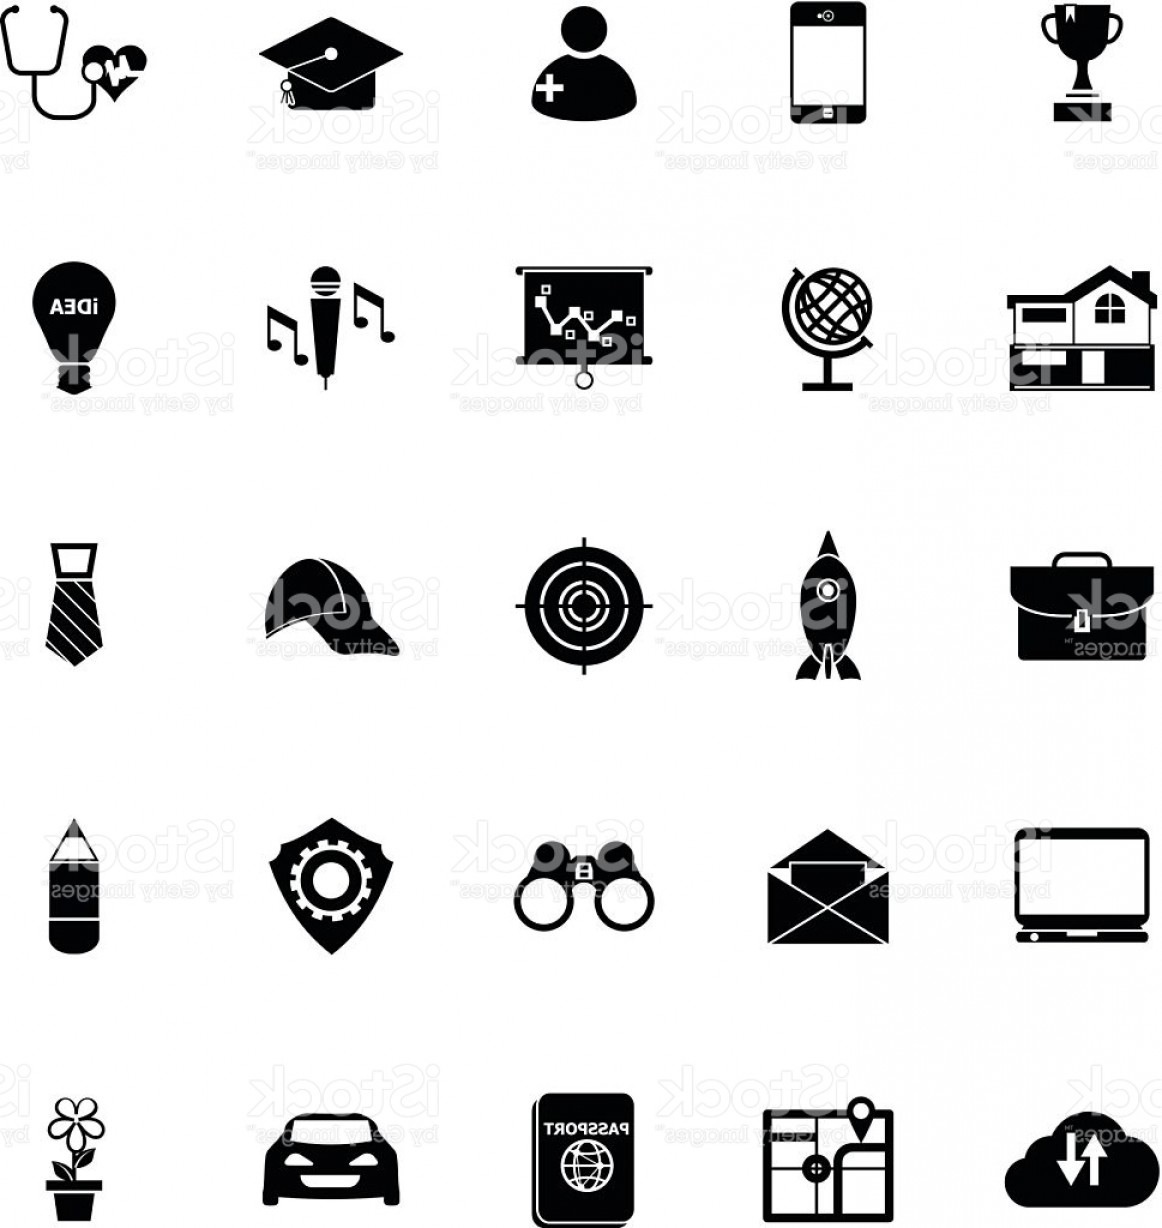 Vectors Job Description: Job Description Icons On White Background Gm